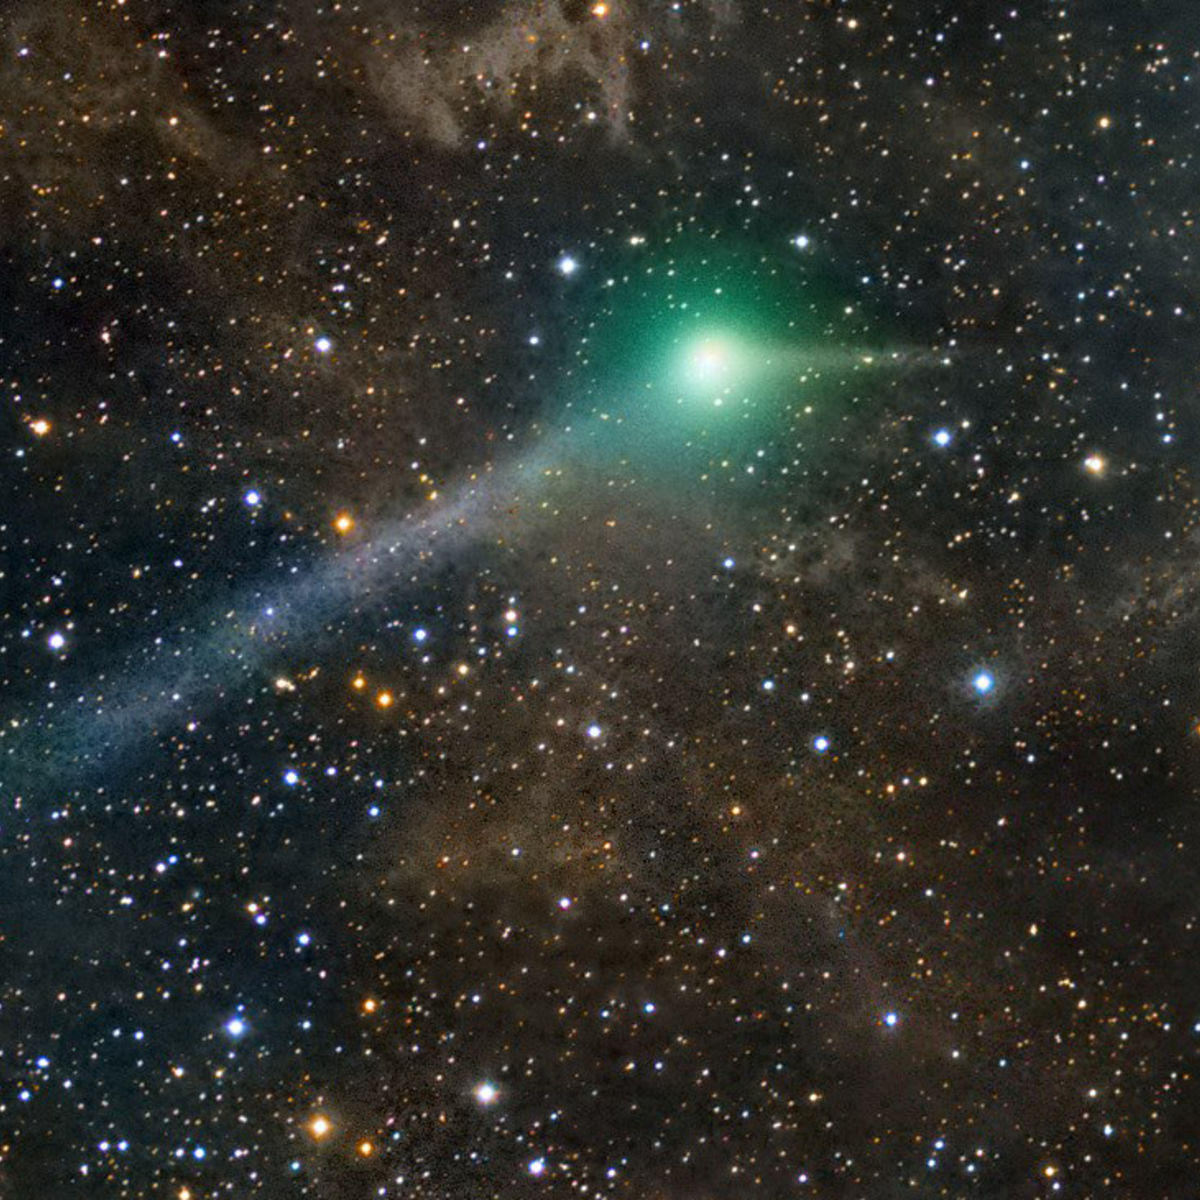 Comet C/2014 Q2 Lovejoy near the north celestial pole on May 29, 2015, with Polaris glowing nearby. Credit: Rogelio Bernal Andreo